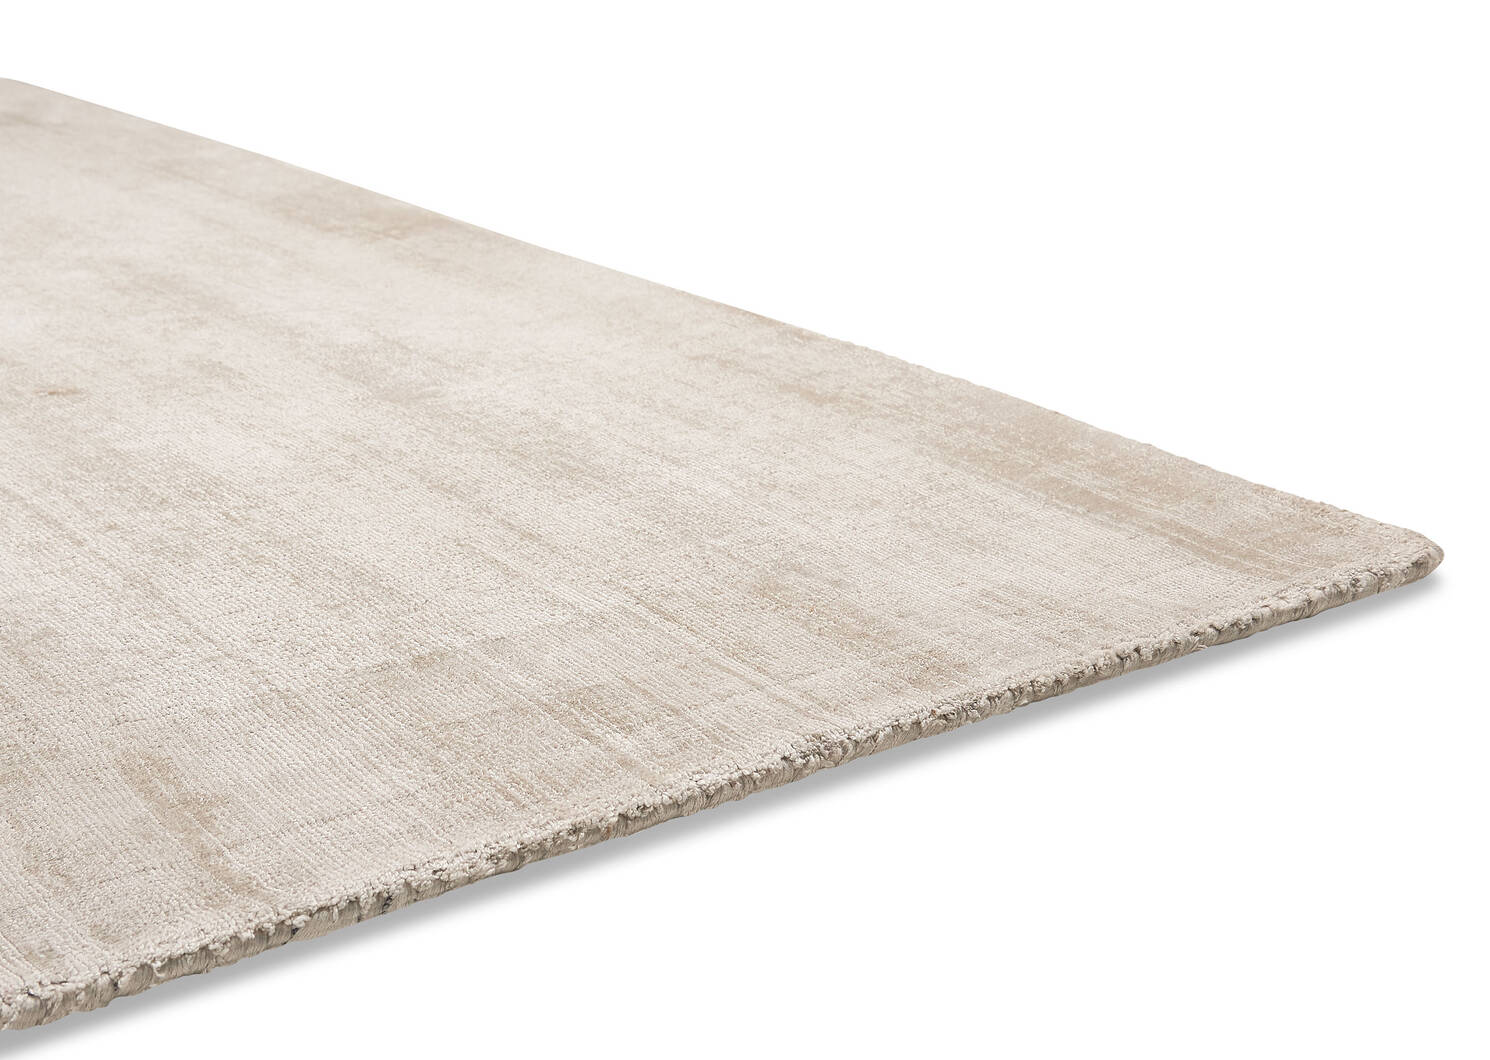 Antique Rug - Sand